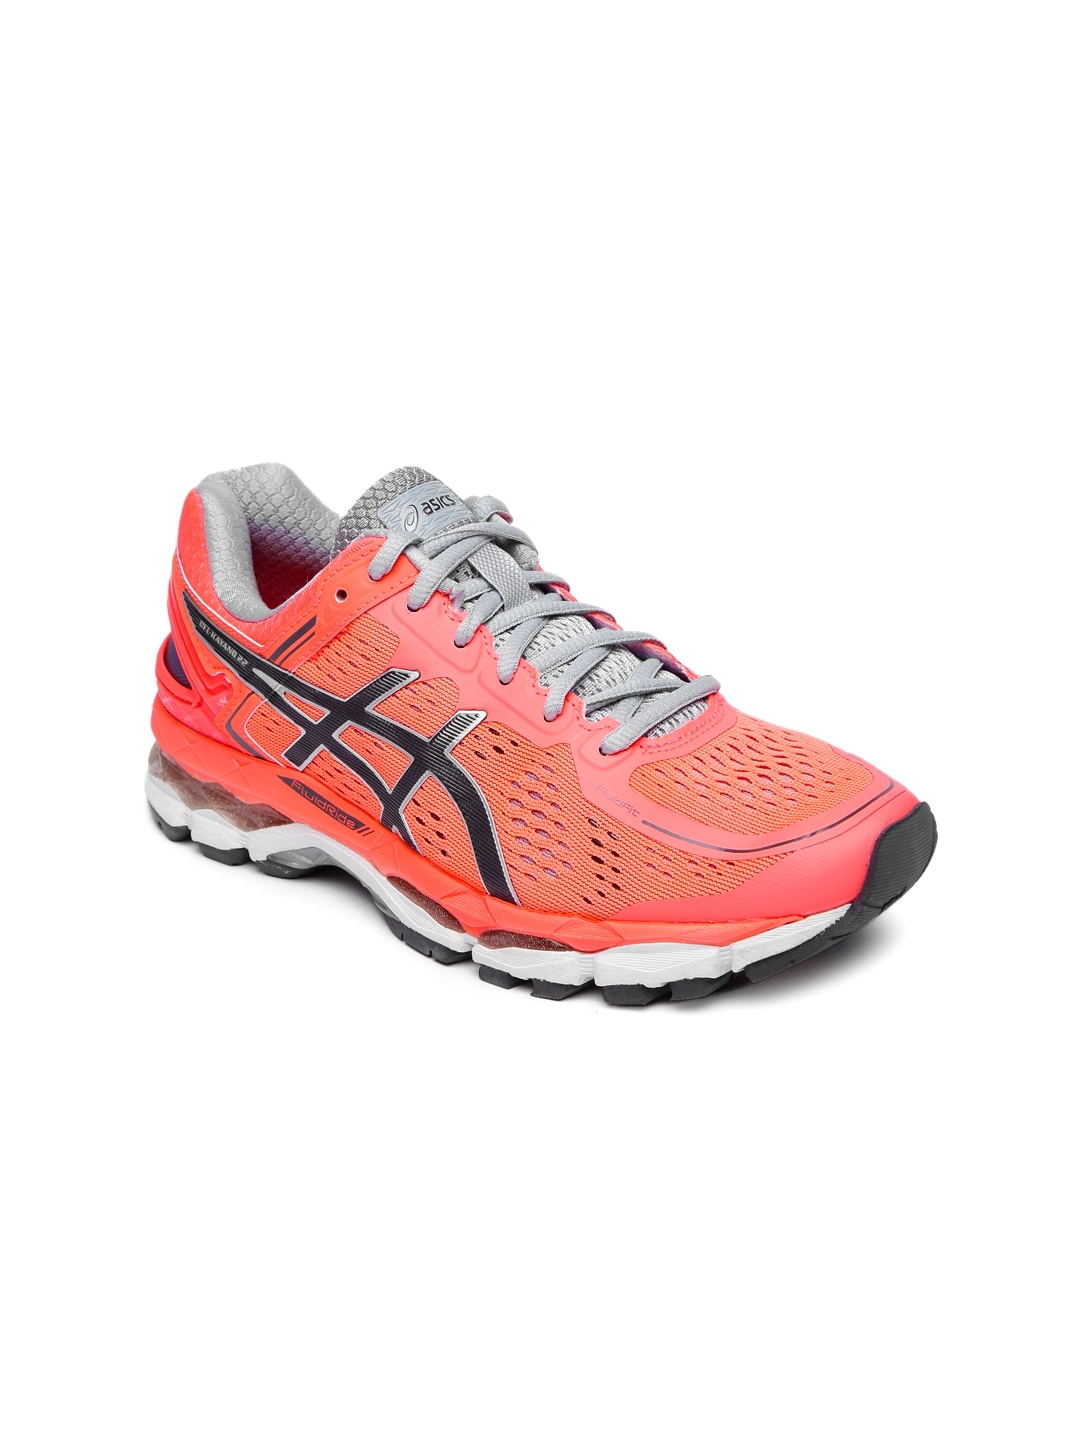 2d772f73e20c8e Buy ASICS Women Neon Orange Running Shoes - Sports Shoes for Women ...